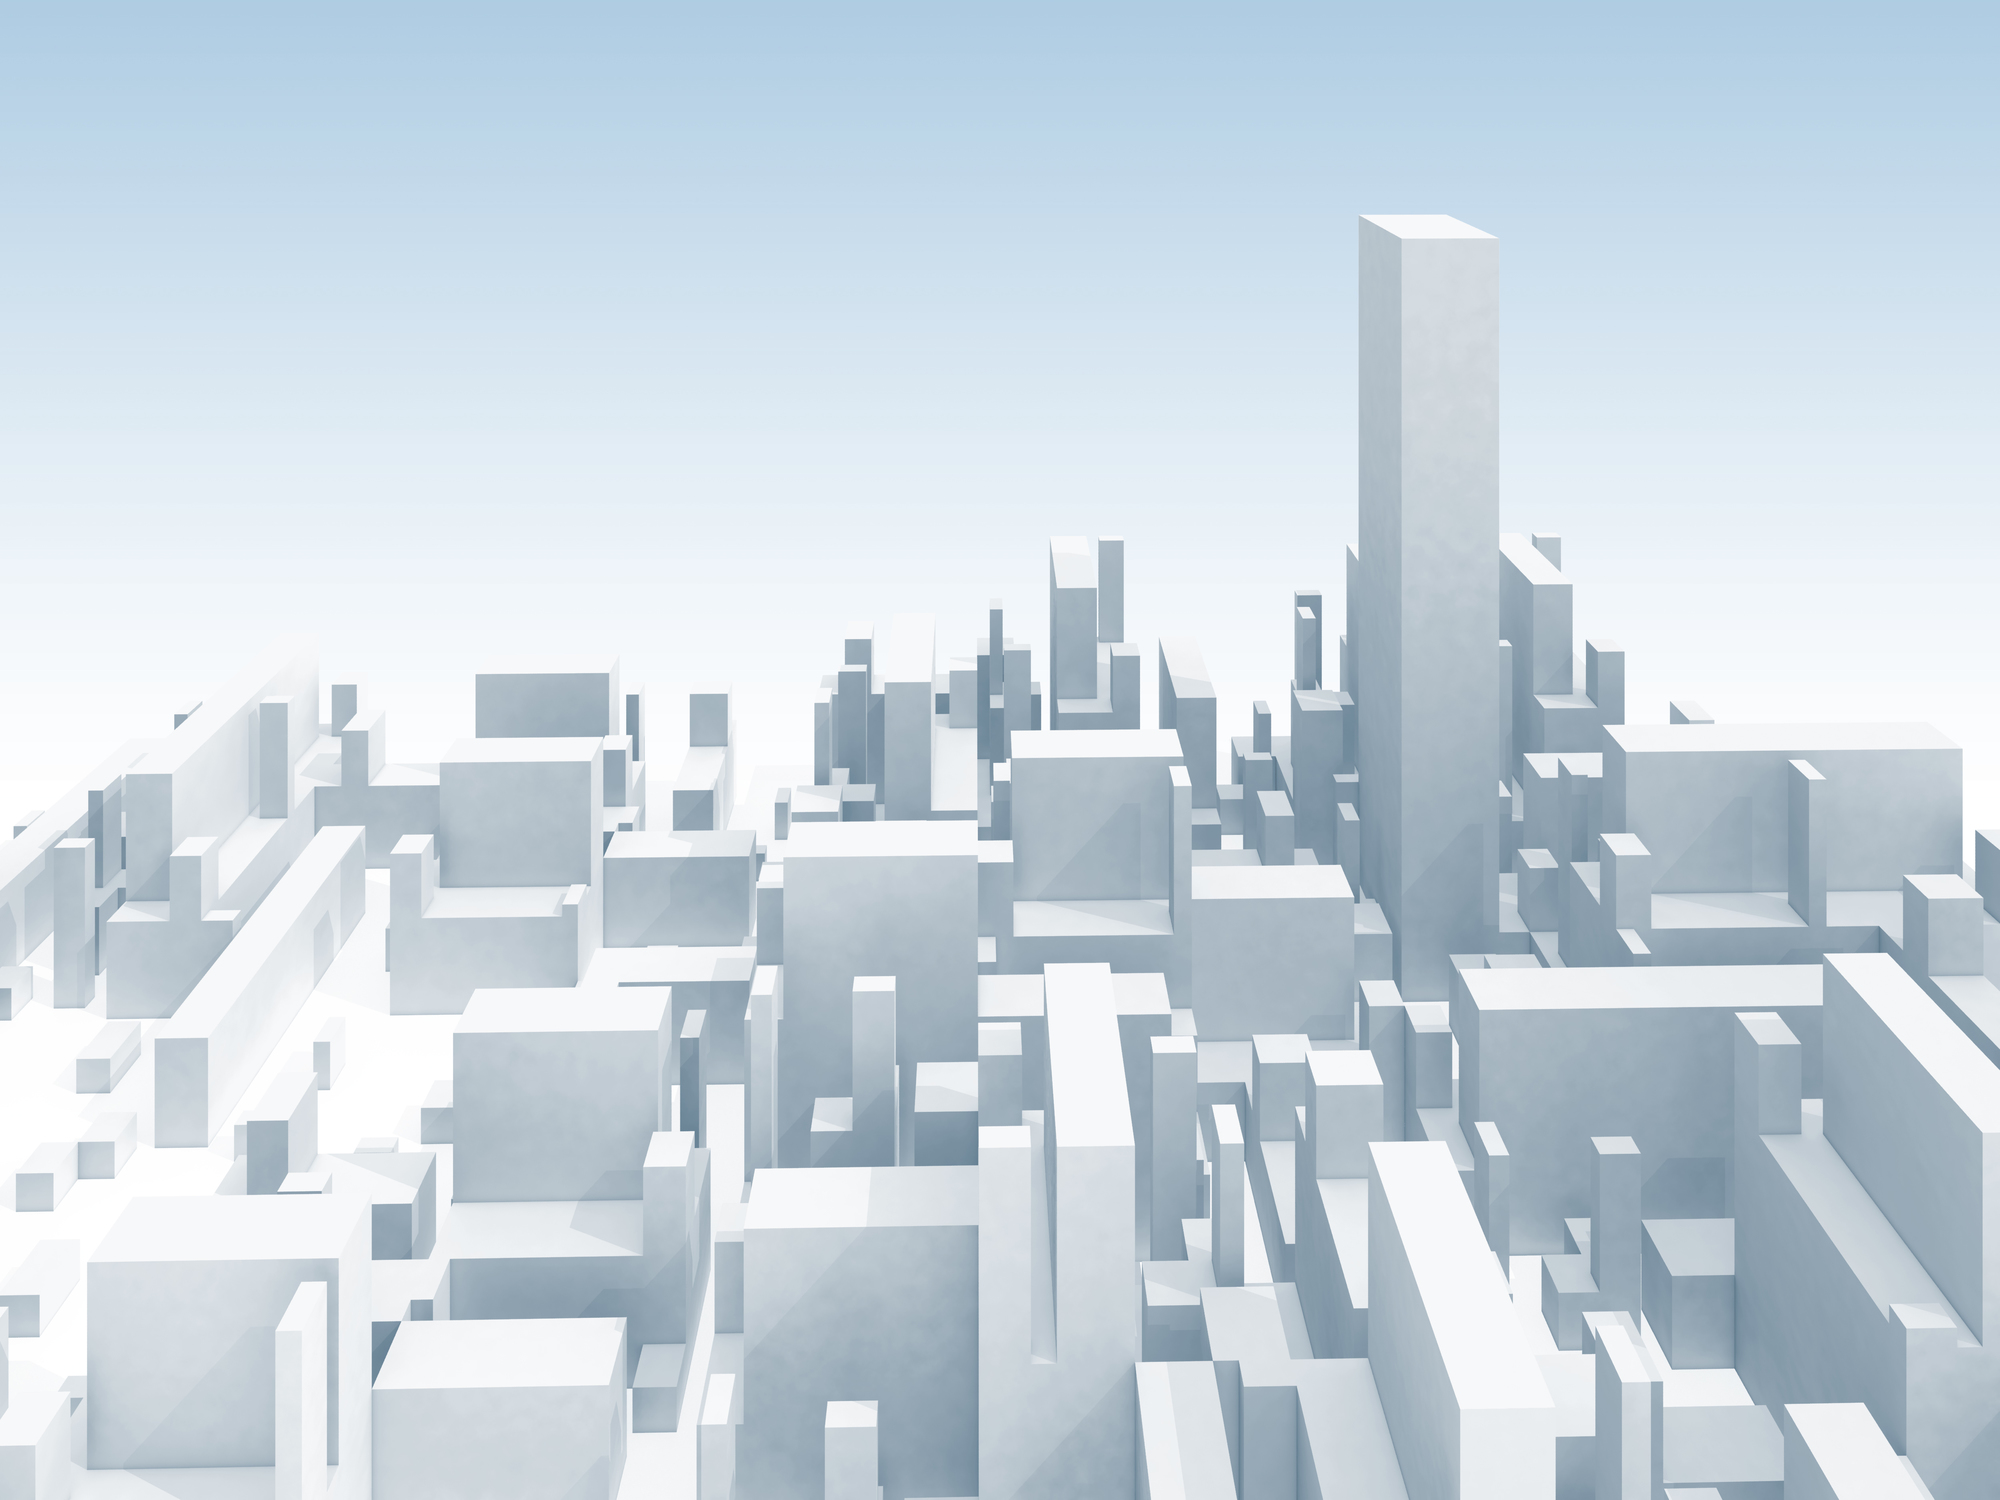 Abstract schematic white 3d cityscape skyline with one the highest skyscraper